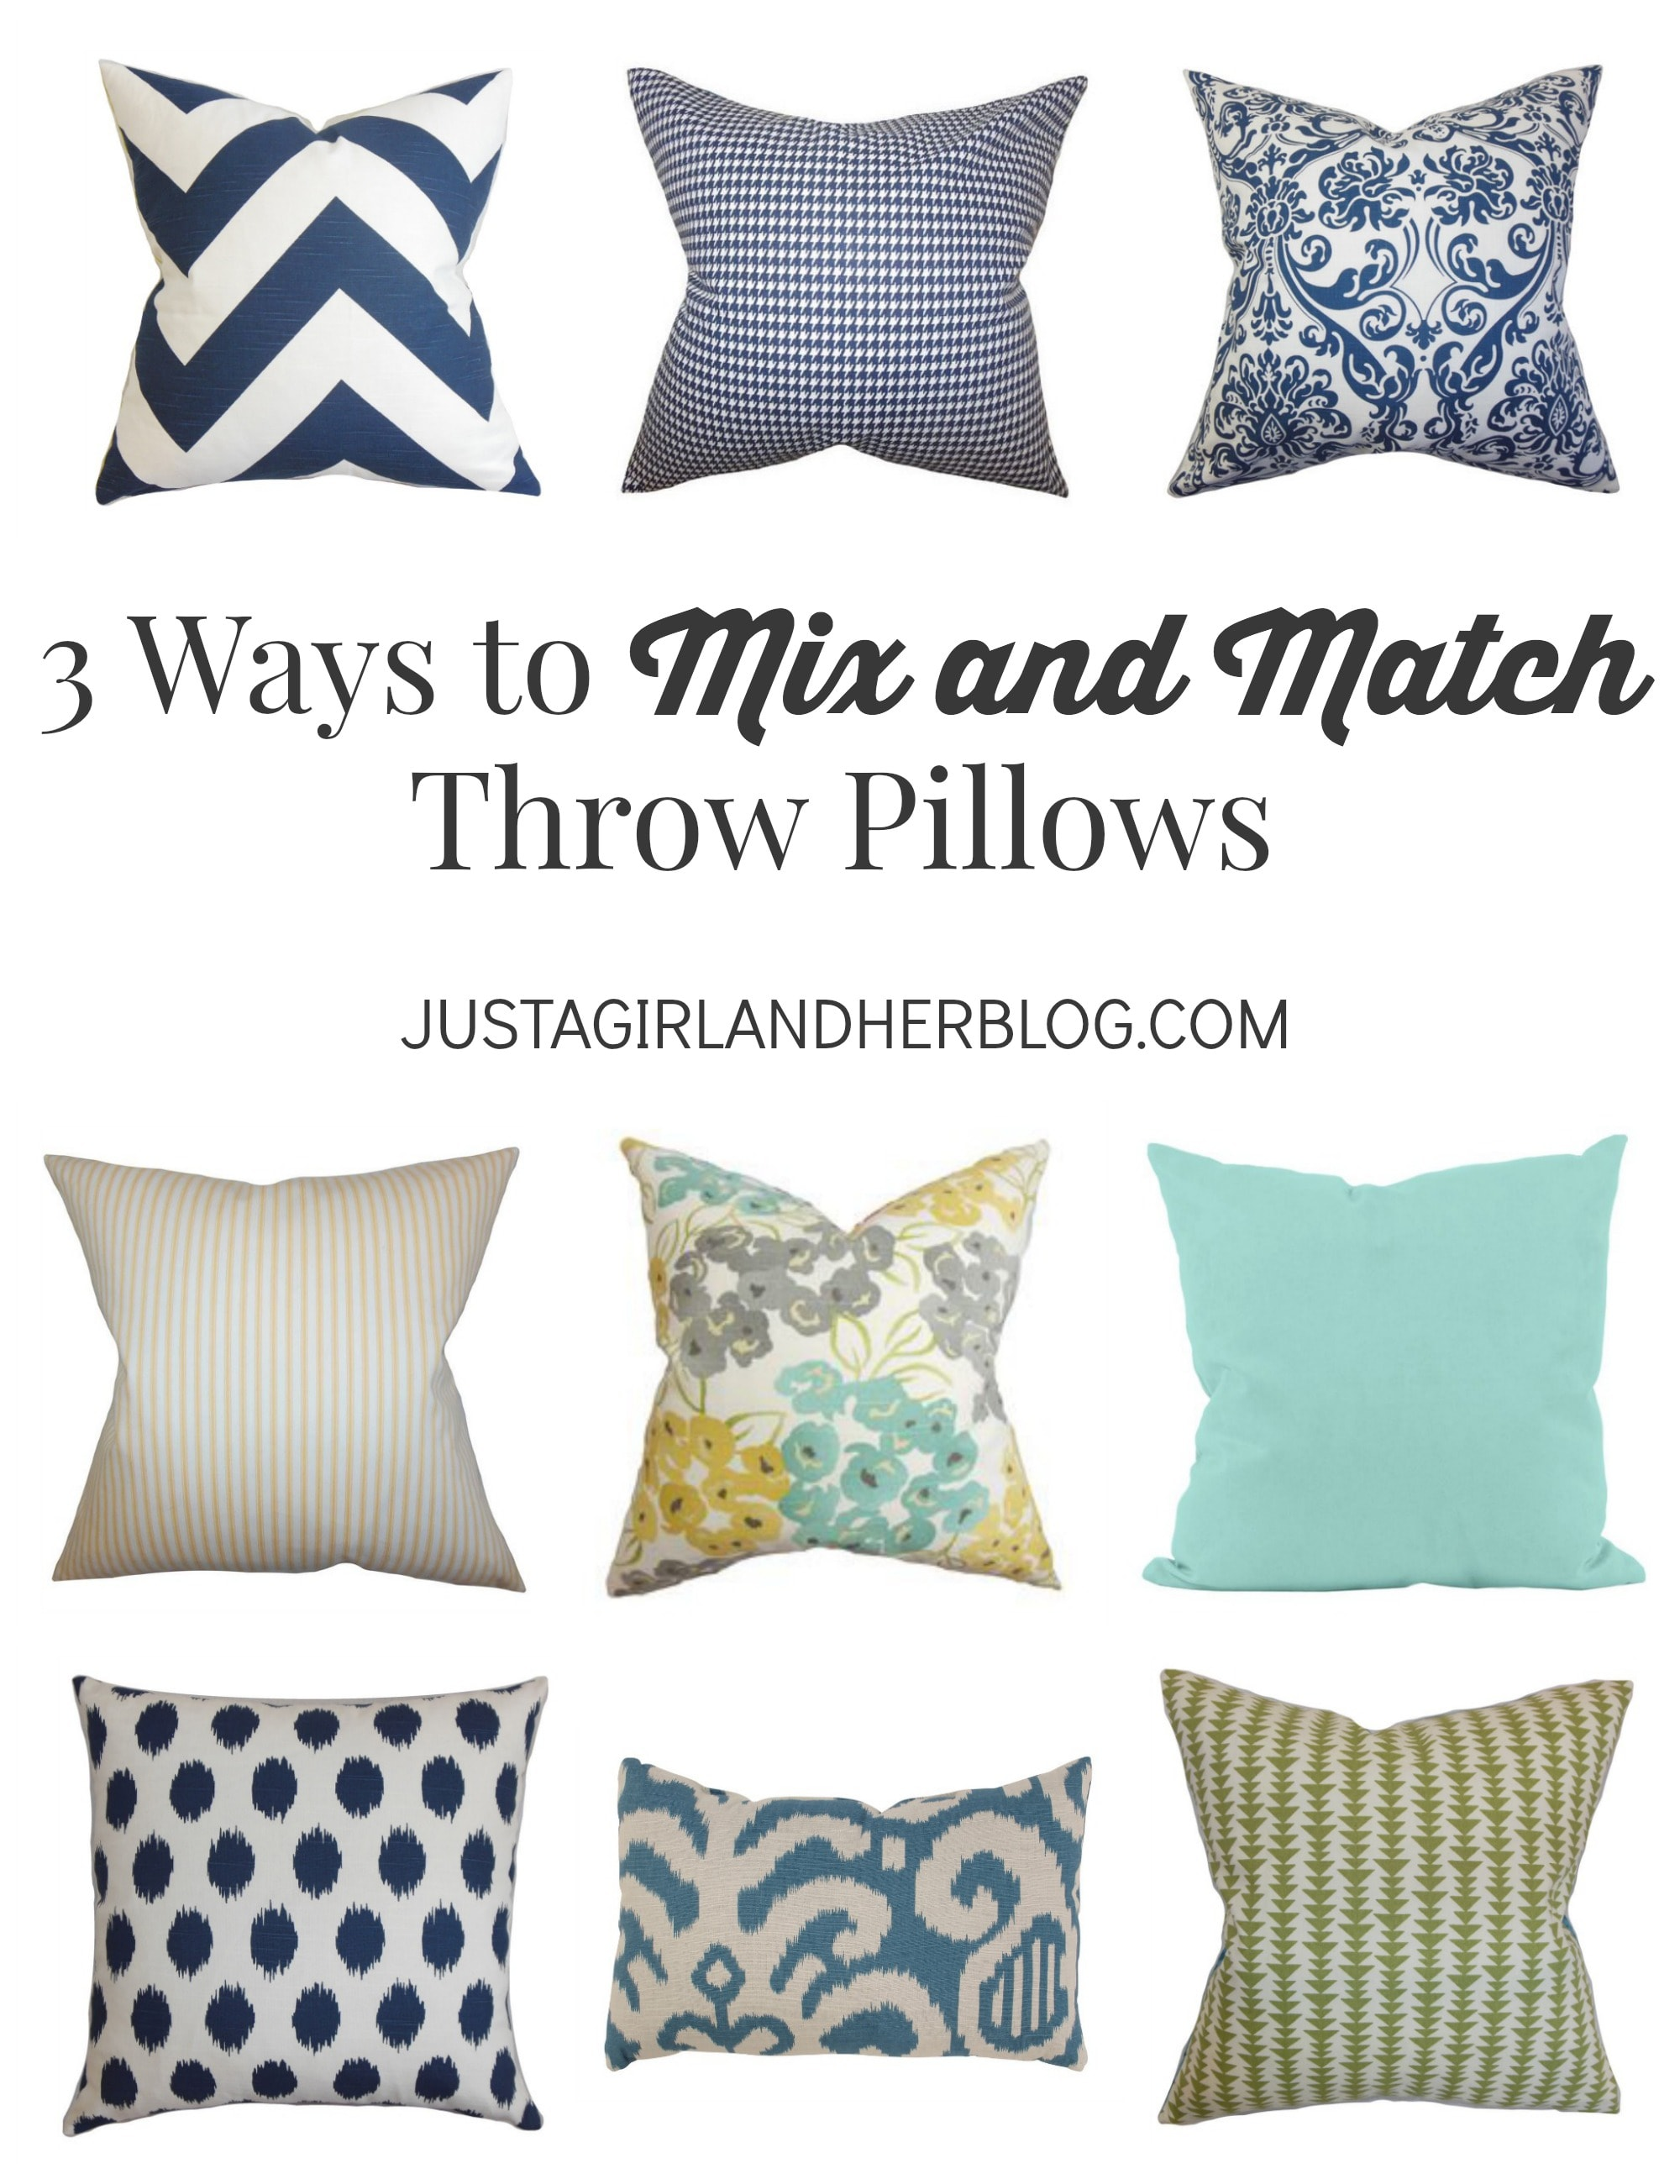 photograph about Justagirlandherblog known as 3 Strategies towards Blend and Recreation Toss Pillows Abby Lawson